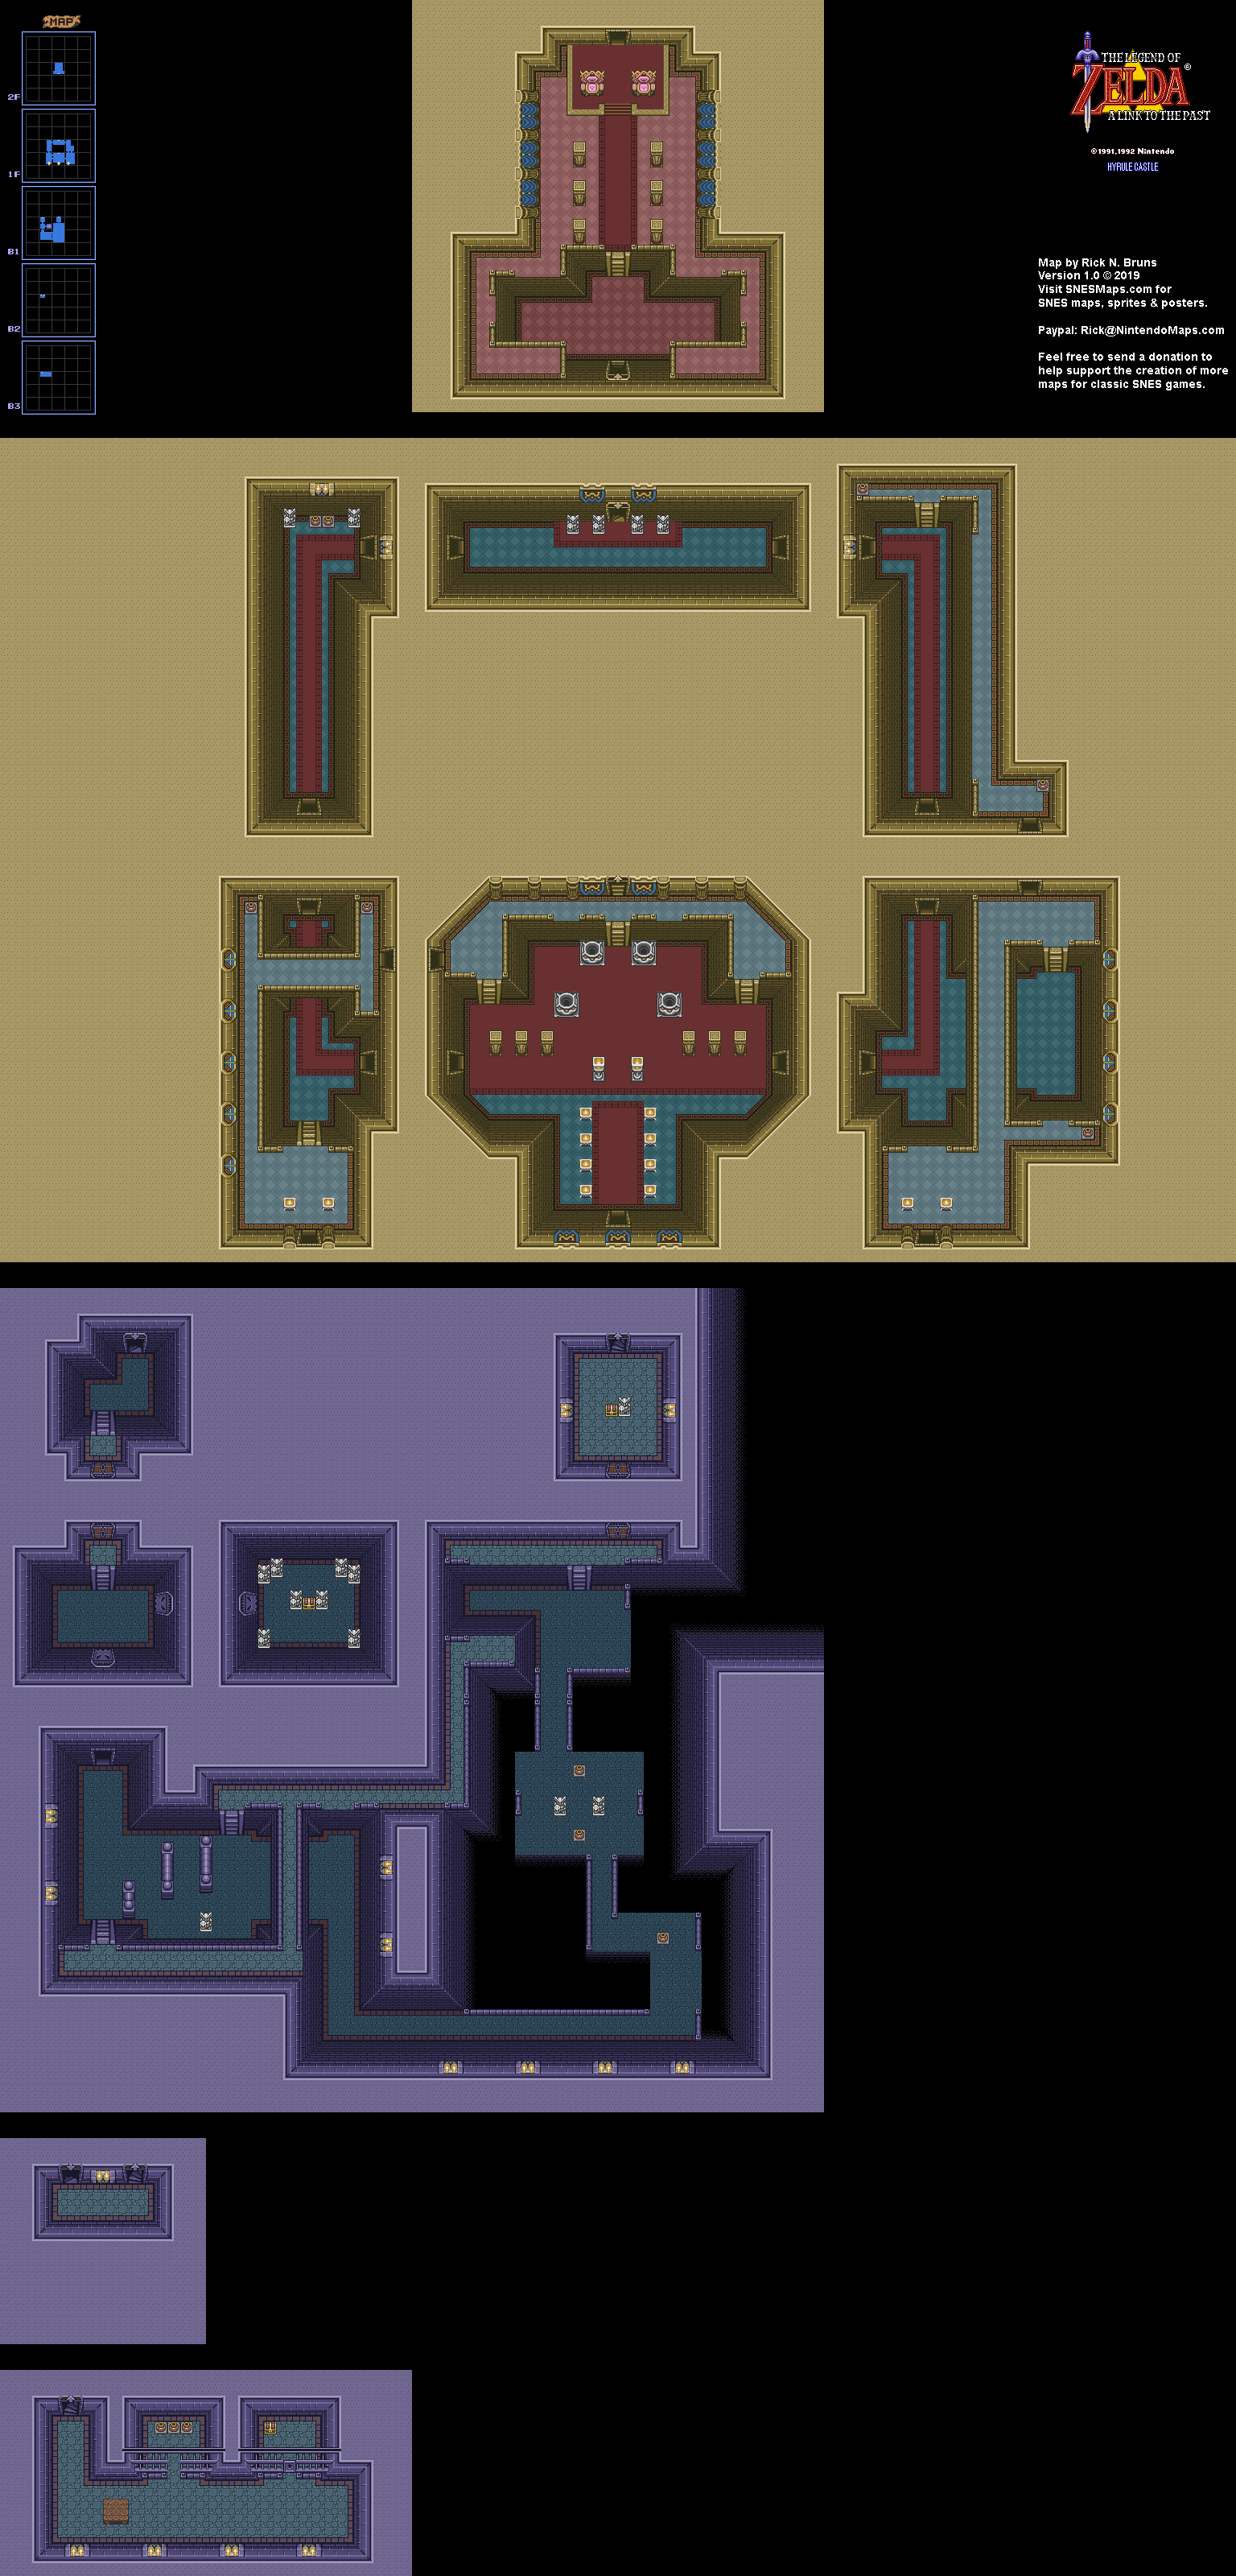 The Legend of Zelda: A Link to the Past - Hyrule Castle Map